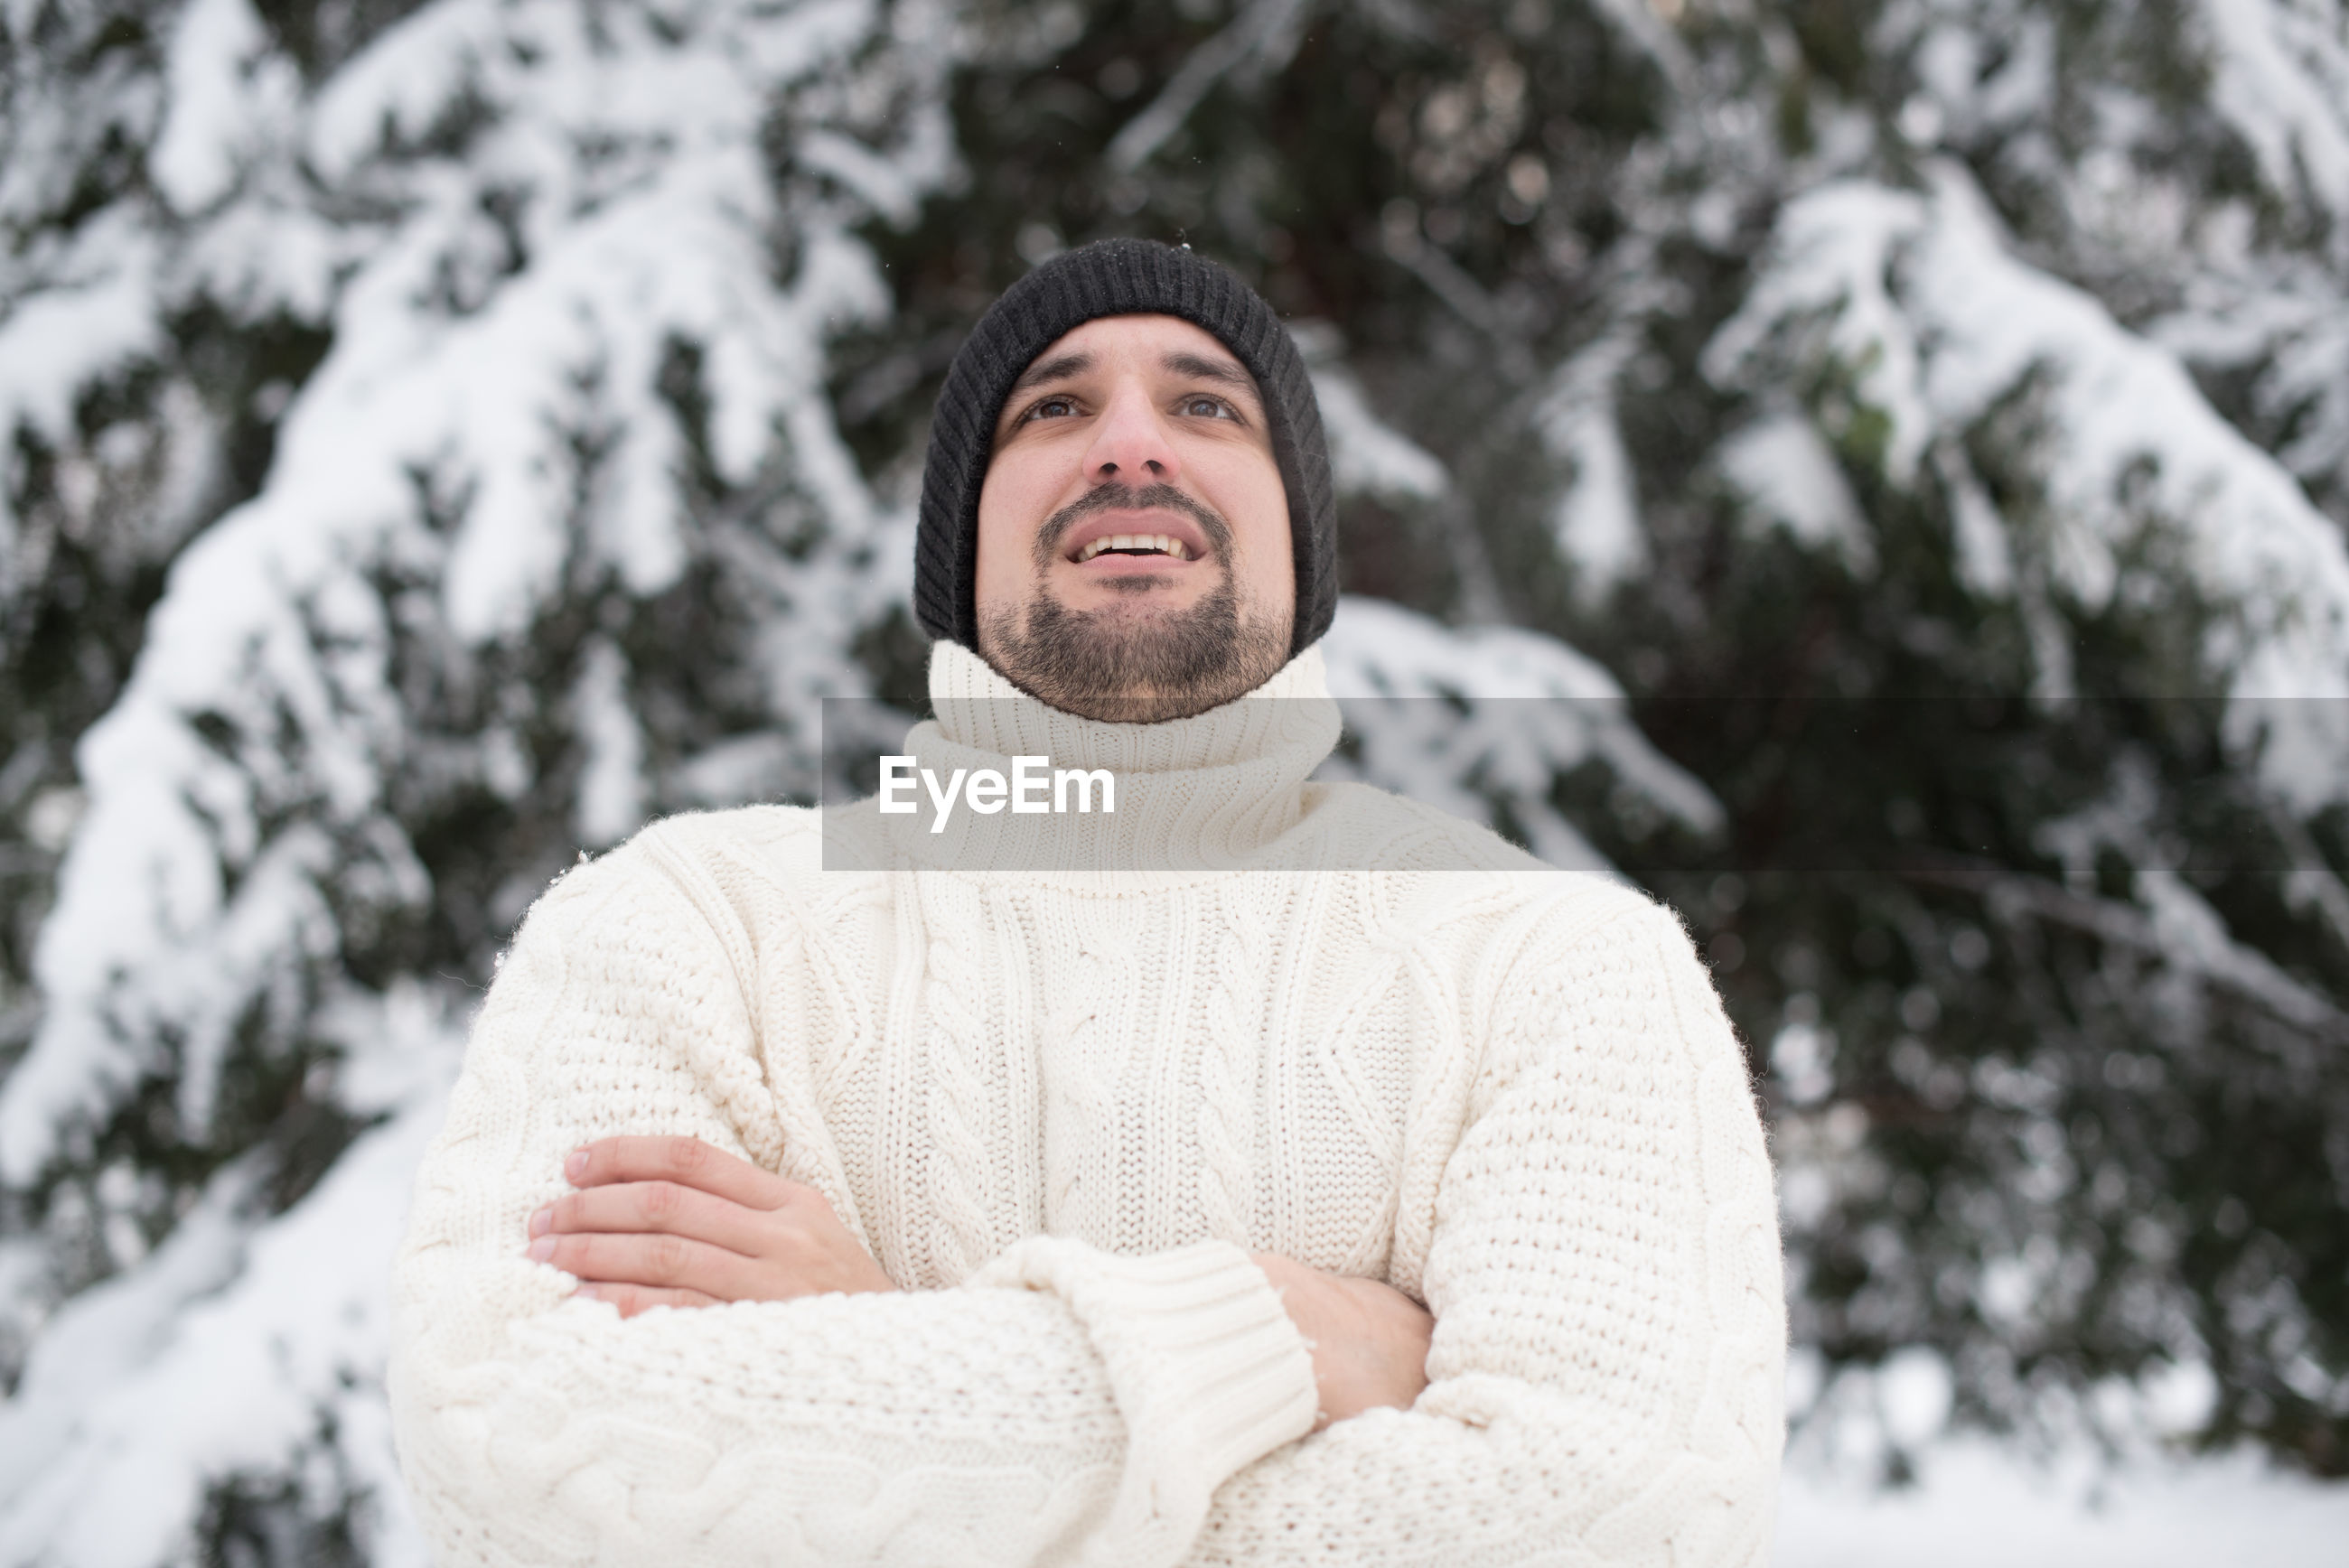 Portrait of young man against trees during winter